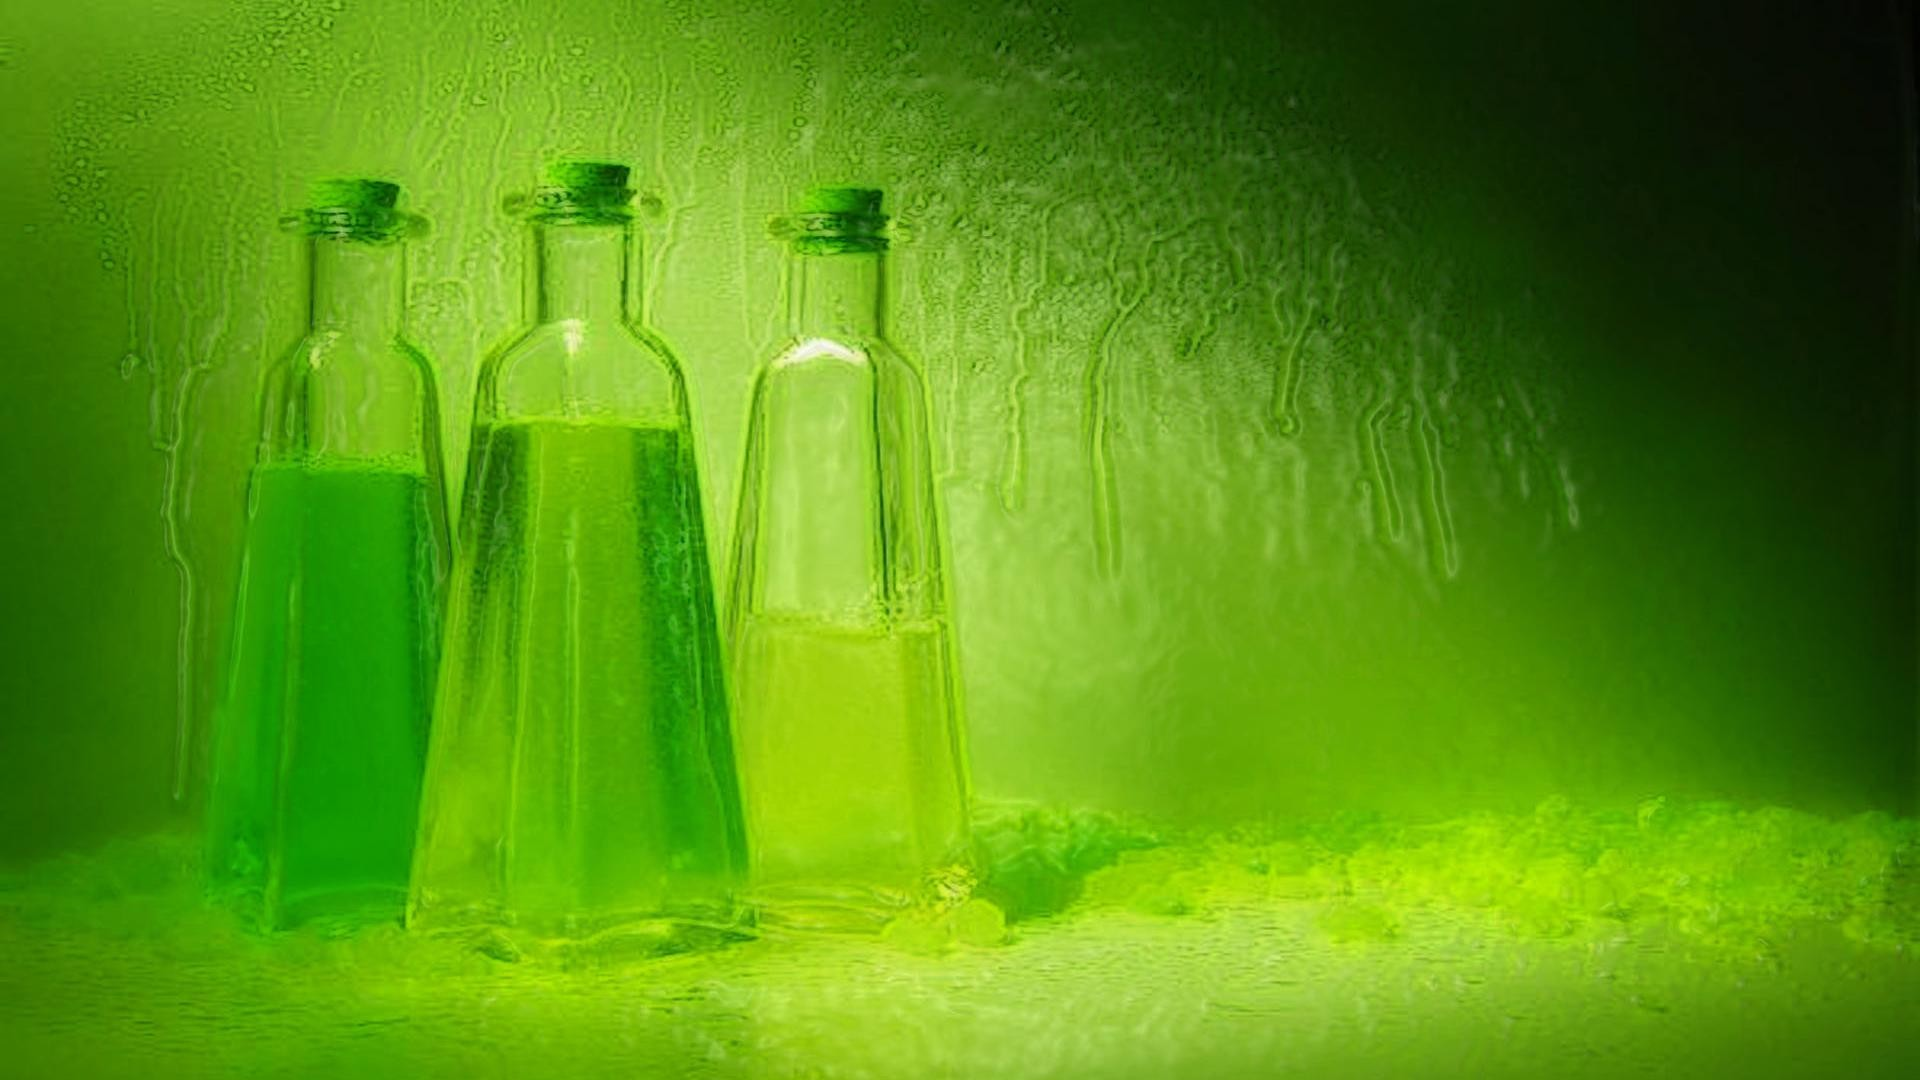 1920x1080  hd Green and relaxed bottle design desktop pictures wide  wallpapers:1280x800,1440x900,